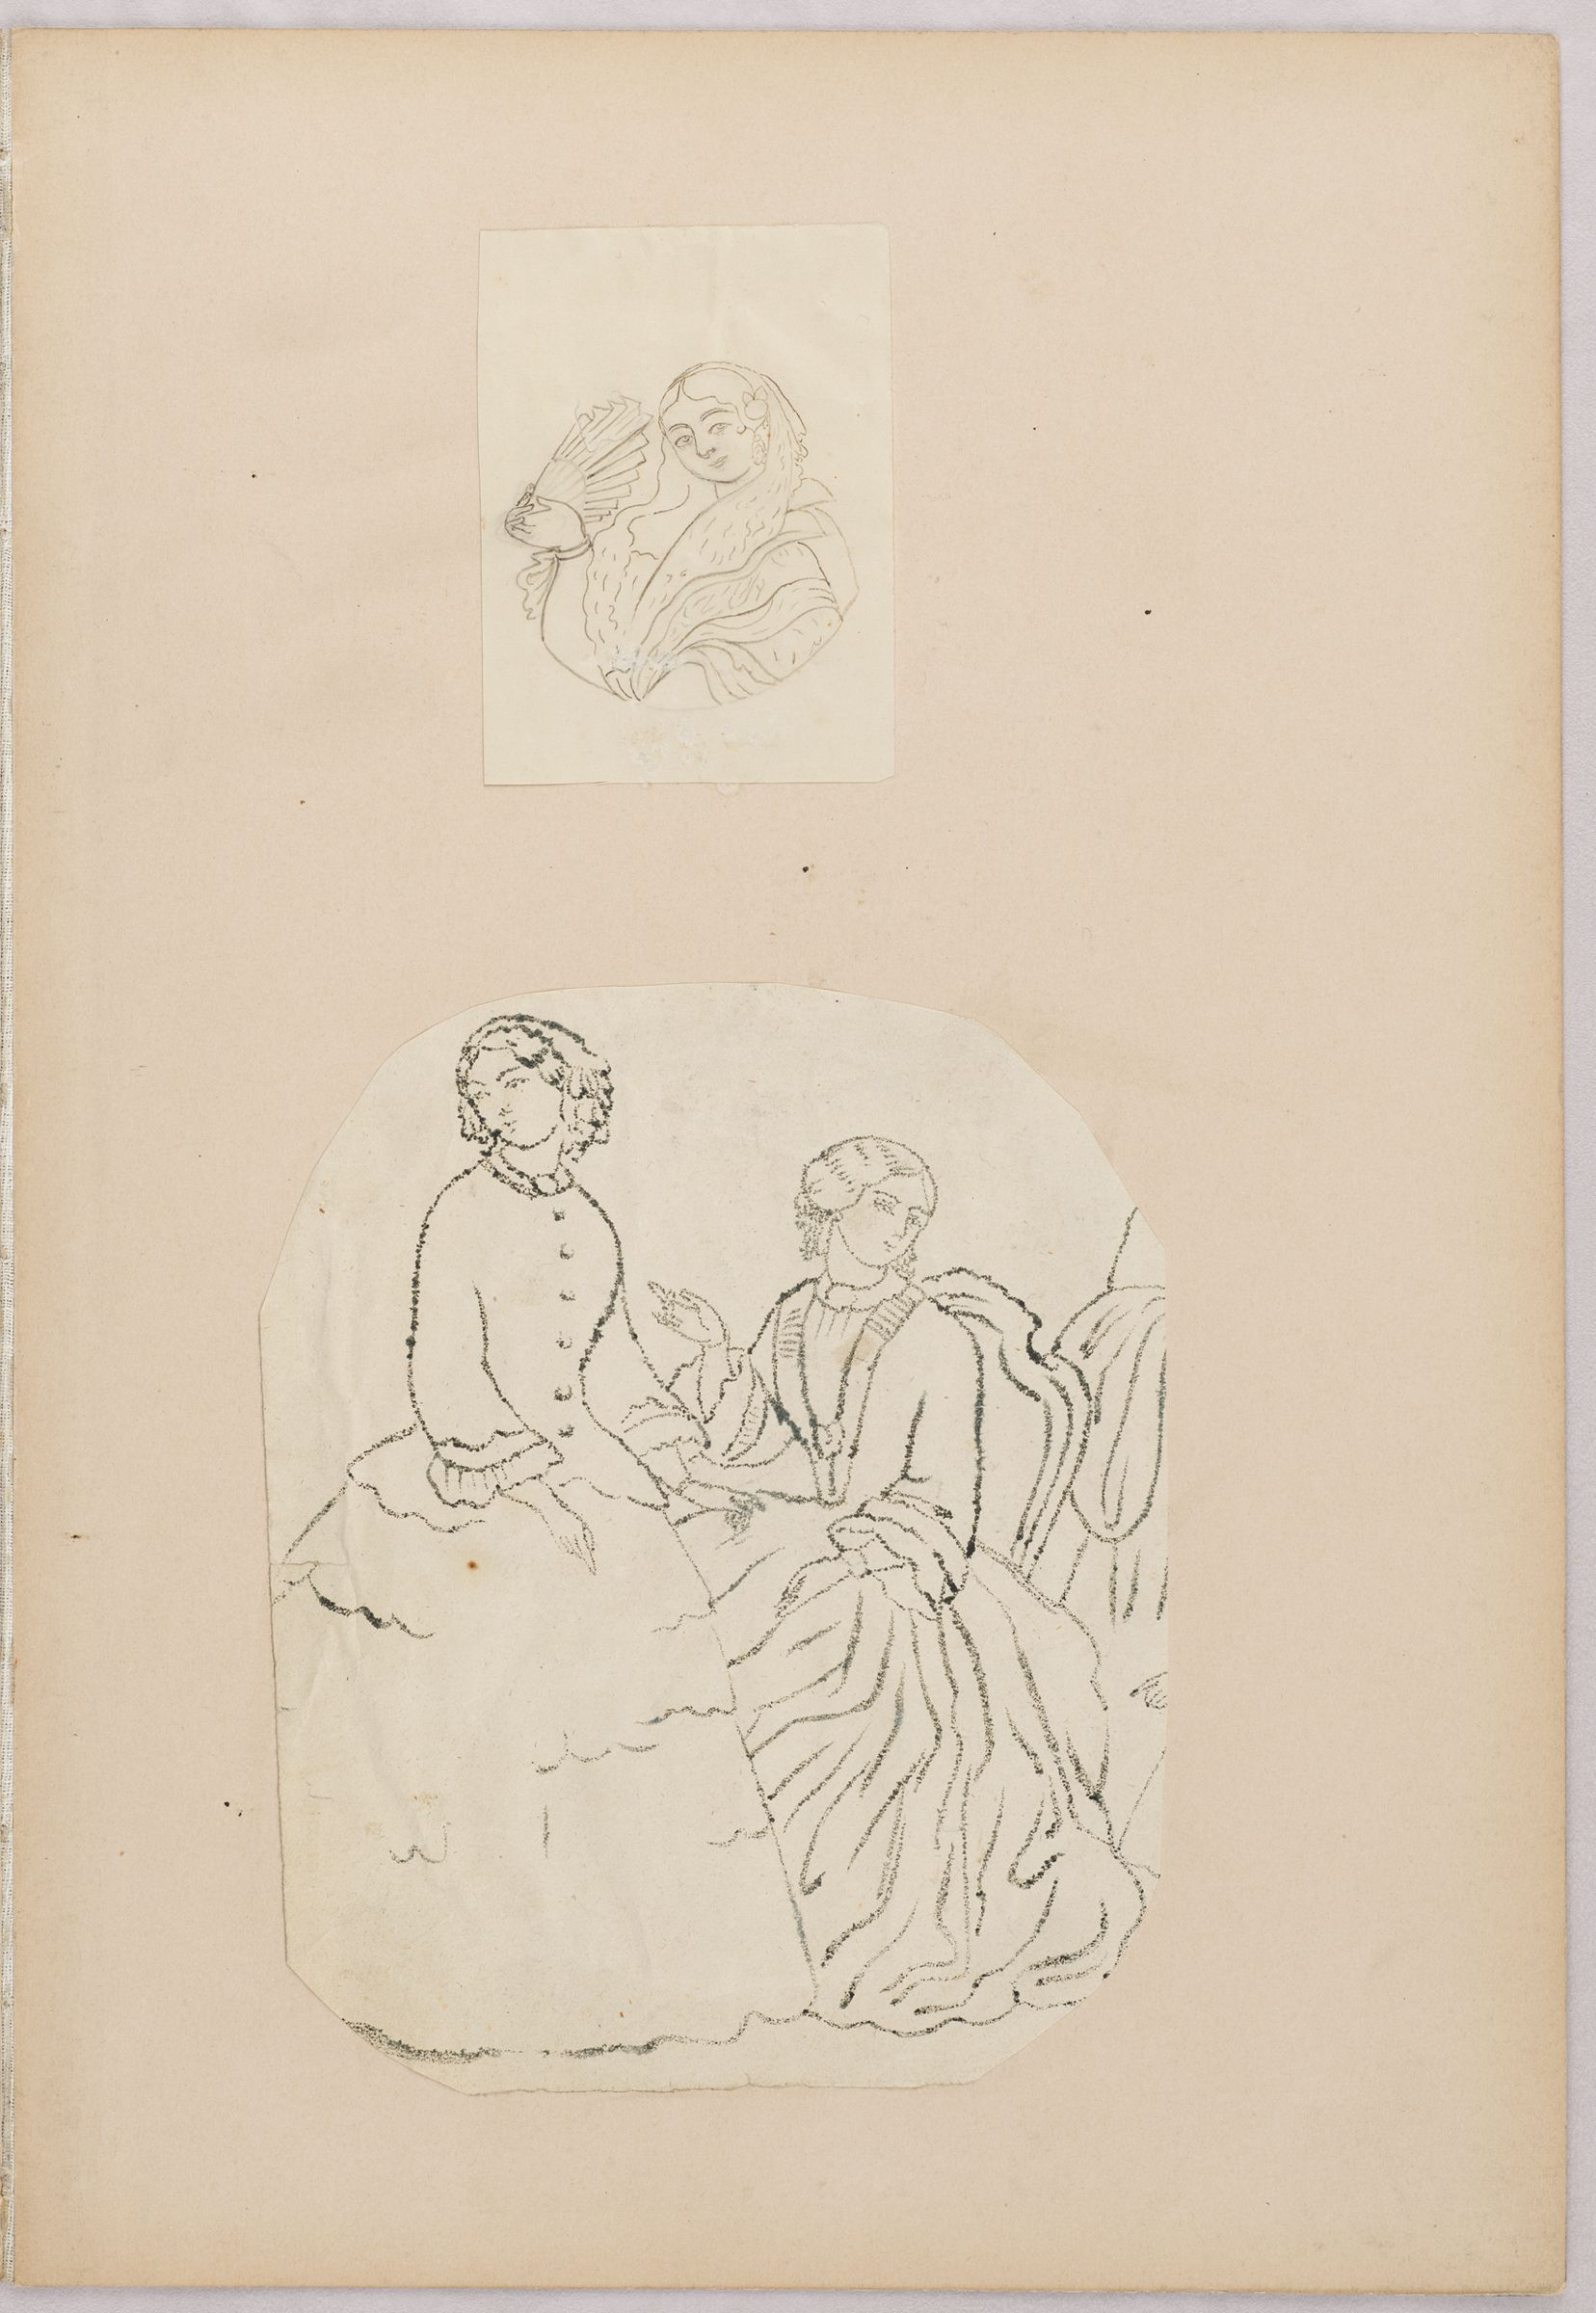 Folio 43 From An Album Of Drawings And Paintings: Two Sheets: Feline; Quails (Recto); Two Drawings: Woman With Fan; Two Women In European Dress  (Verso)